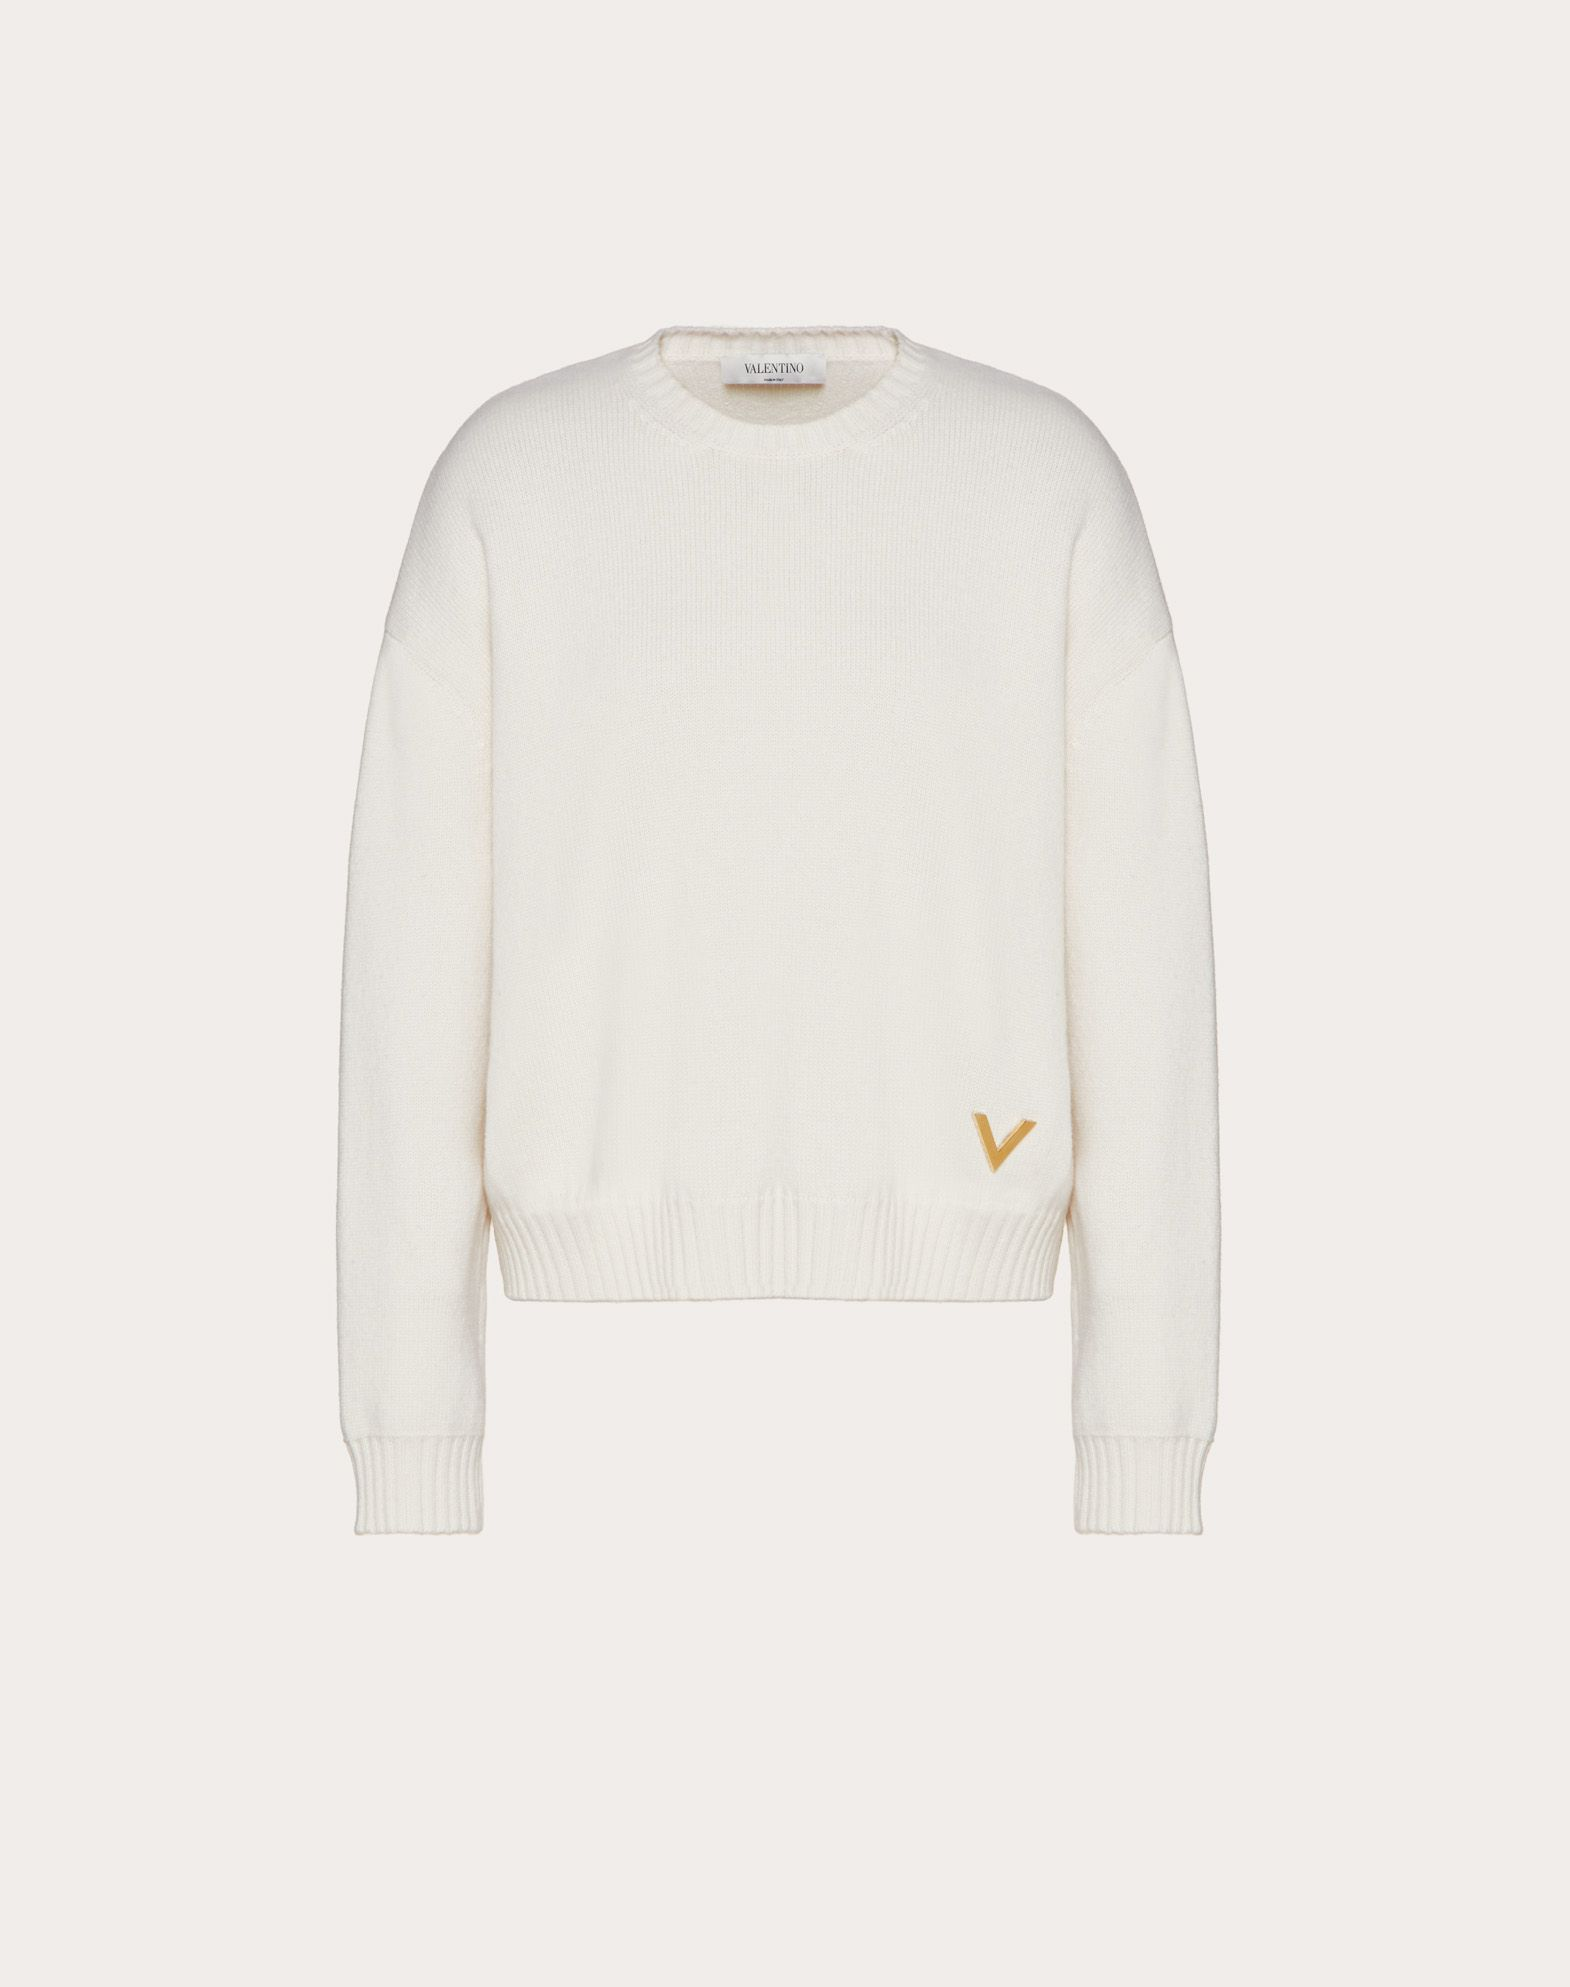 Cashmere Sweater with Gold V Detail